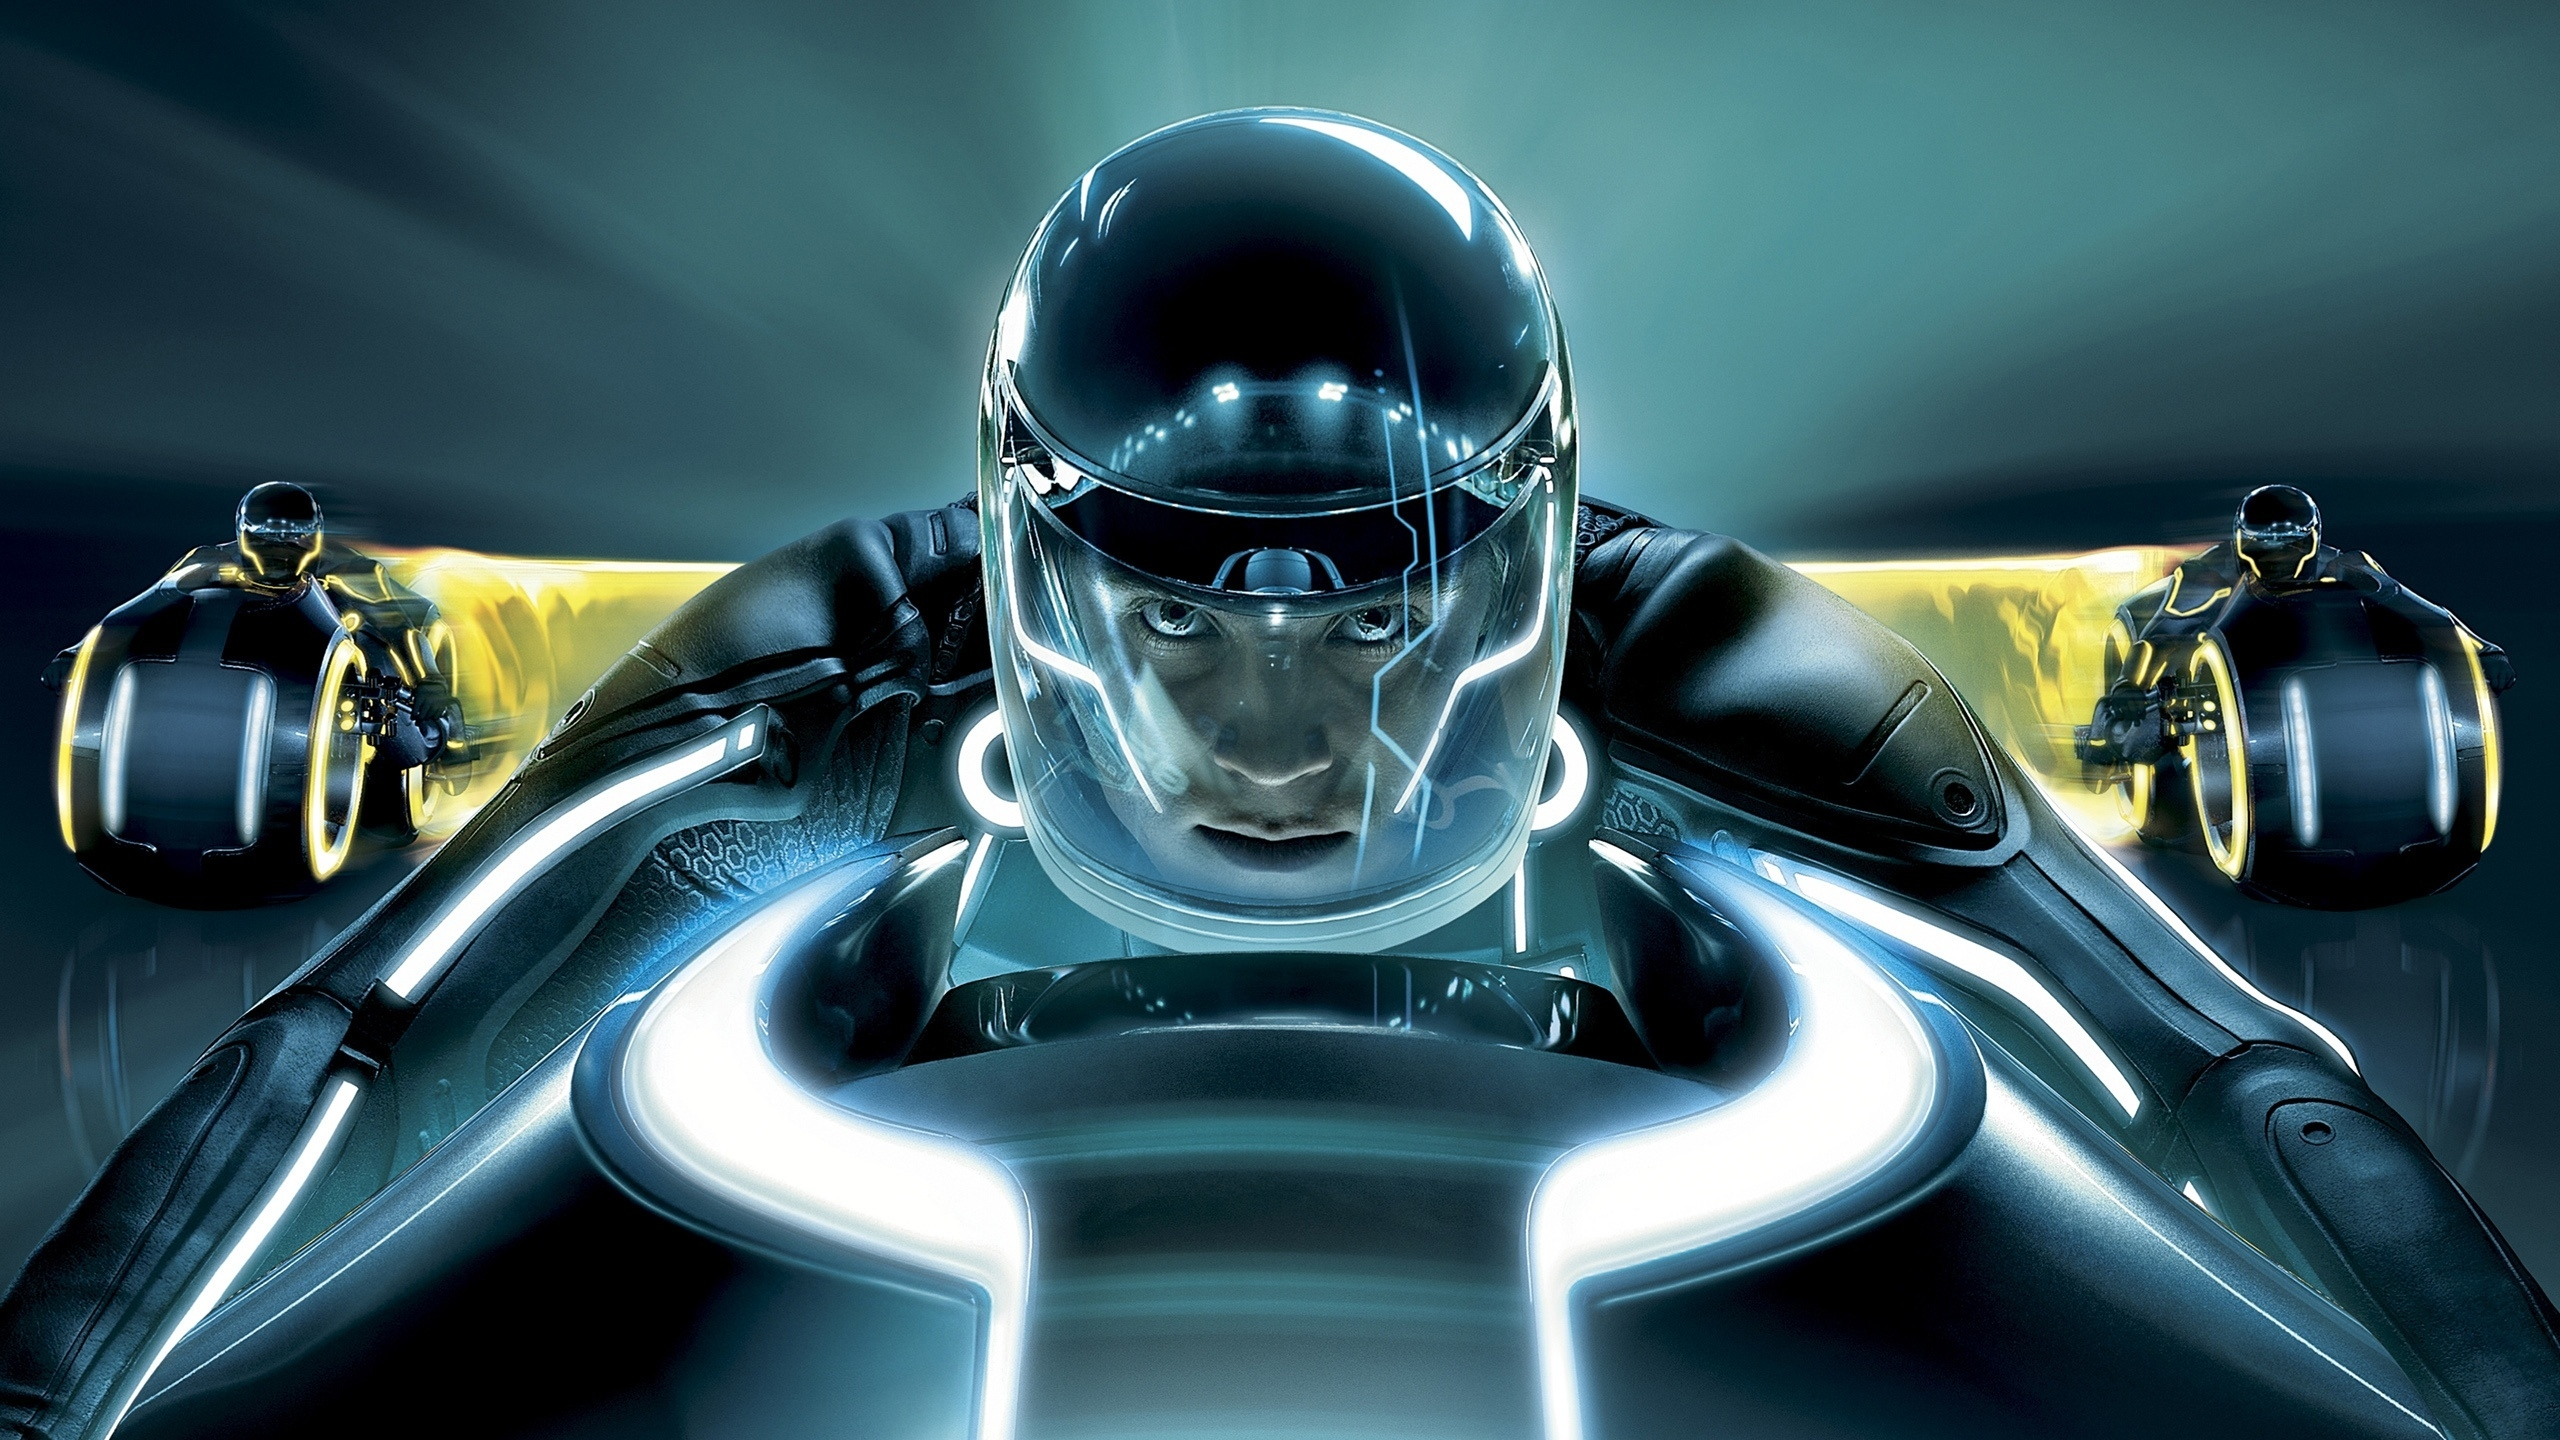 Tron Legacy Movie for 2560x1440 HDTV resolution